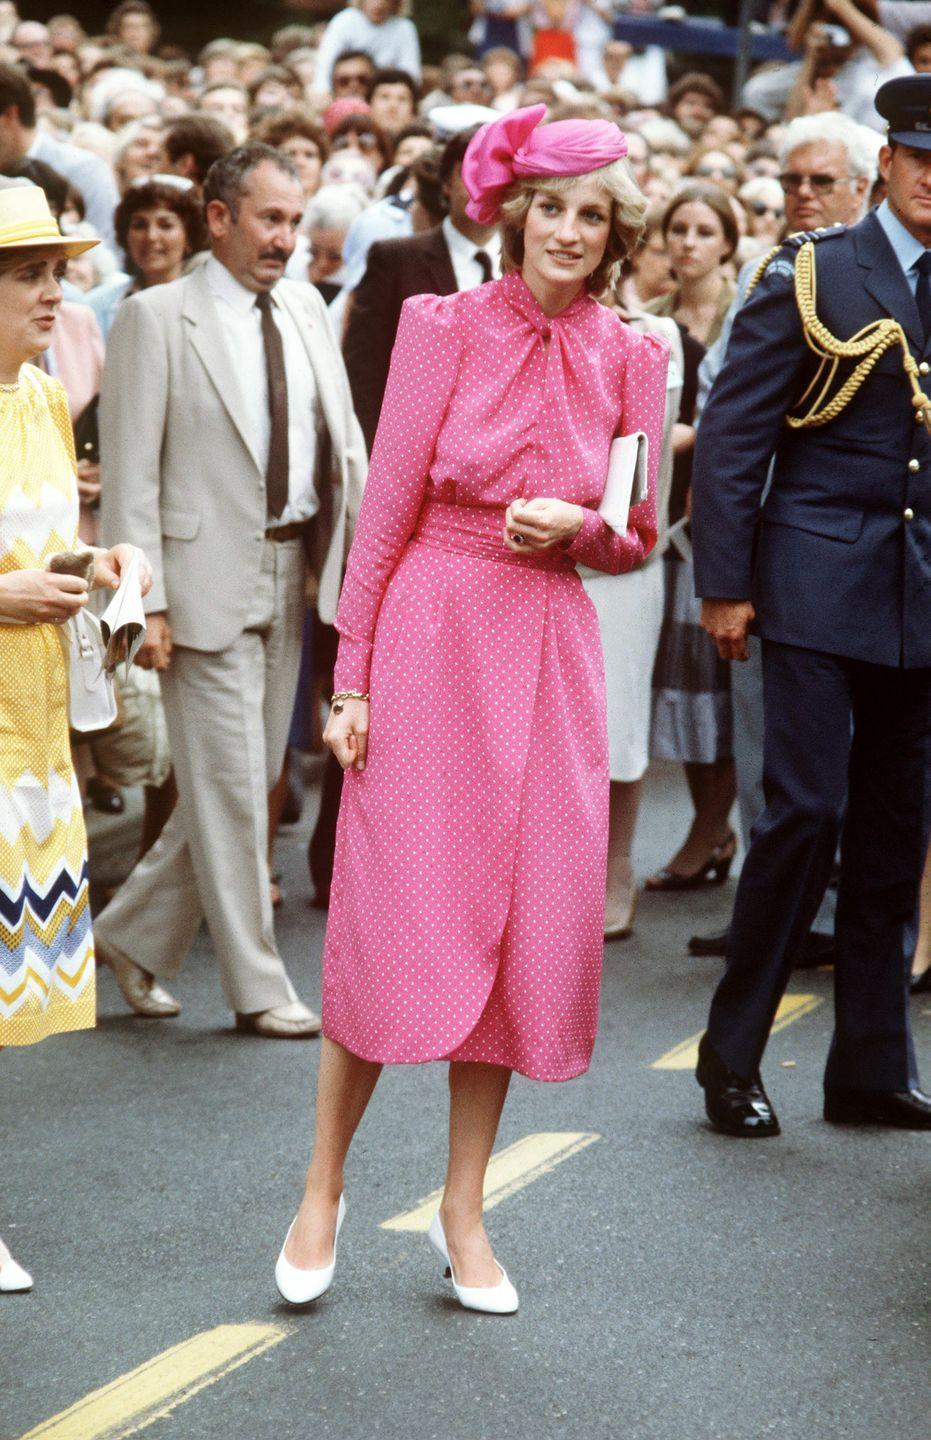 """<p>Turning to one of her signature prints, <a href=""""https://www.townandcountrymag.com/style/fashion-trends/g28367509/princess-diana-polka-dots-style/"""" rel=""""nofollow noopener"""" target=""""_blank"""" data-ylk=""""slk:polka dots"""" class=""""link rapid-noclick-resp"""">polka dots</a>, Princess Diana was really in the pink while visiting Freemantle Hospital in Australia.</p>"""